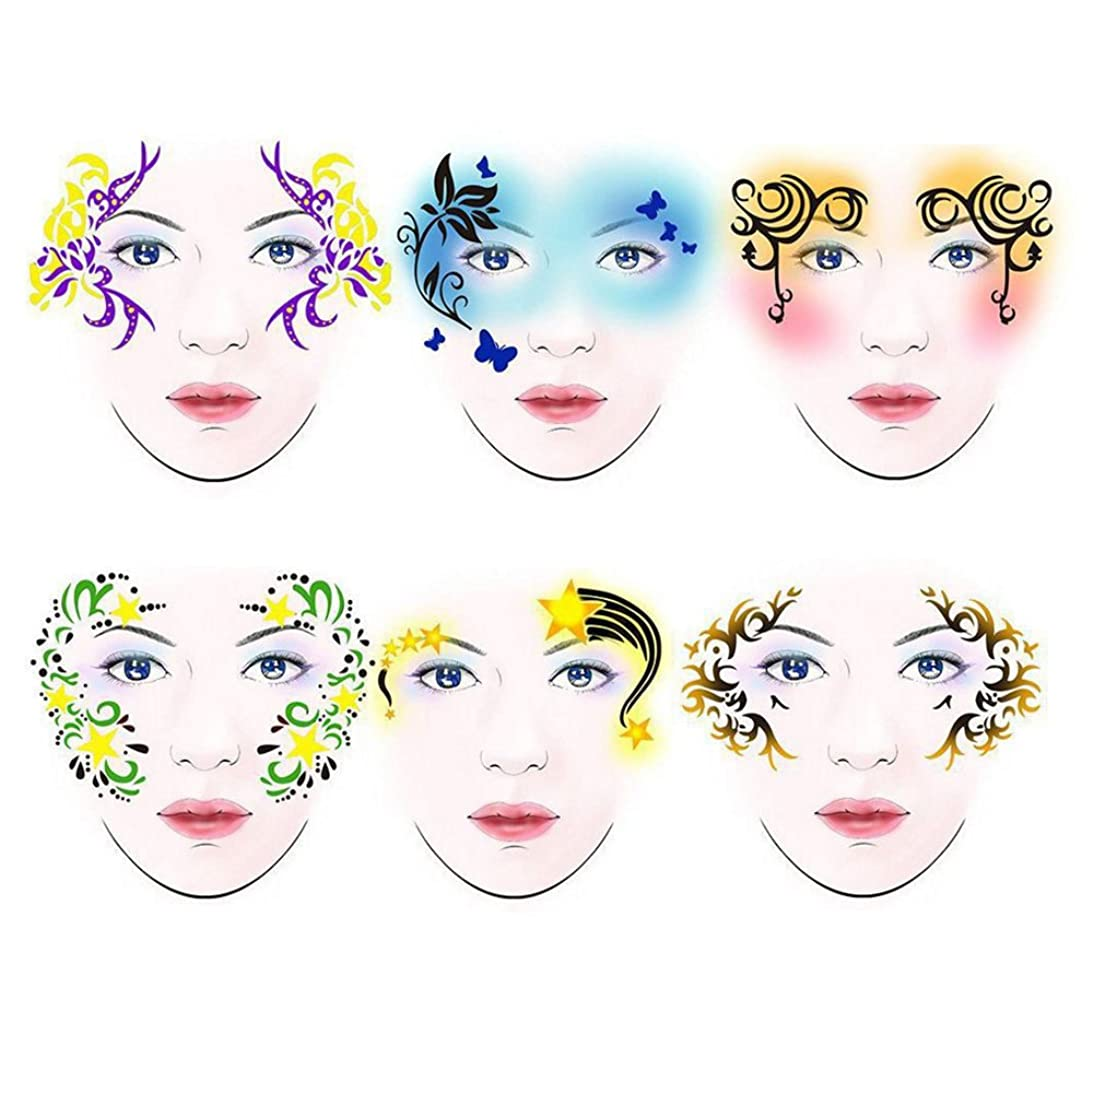 SoarUp Face Paint Stencils, 7styles/set Reusable Body Painting Template Flower Butterfly Facial Design Perfect for Parties, Christmas, Halloween, Carnivals, School & Church Events